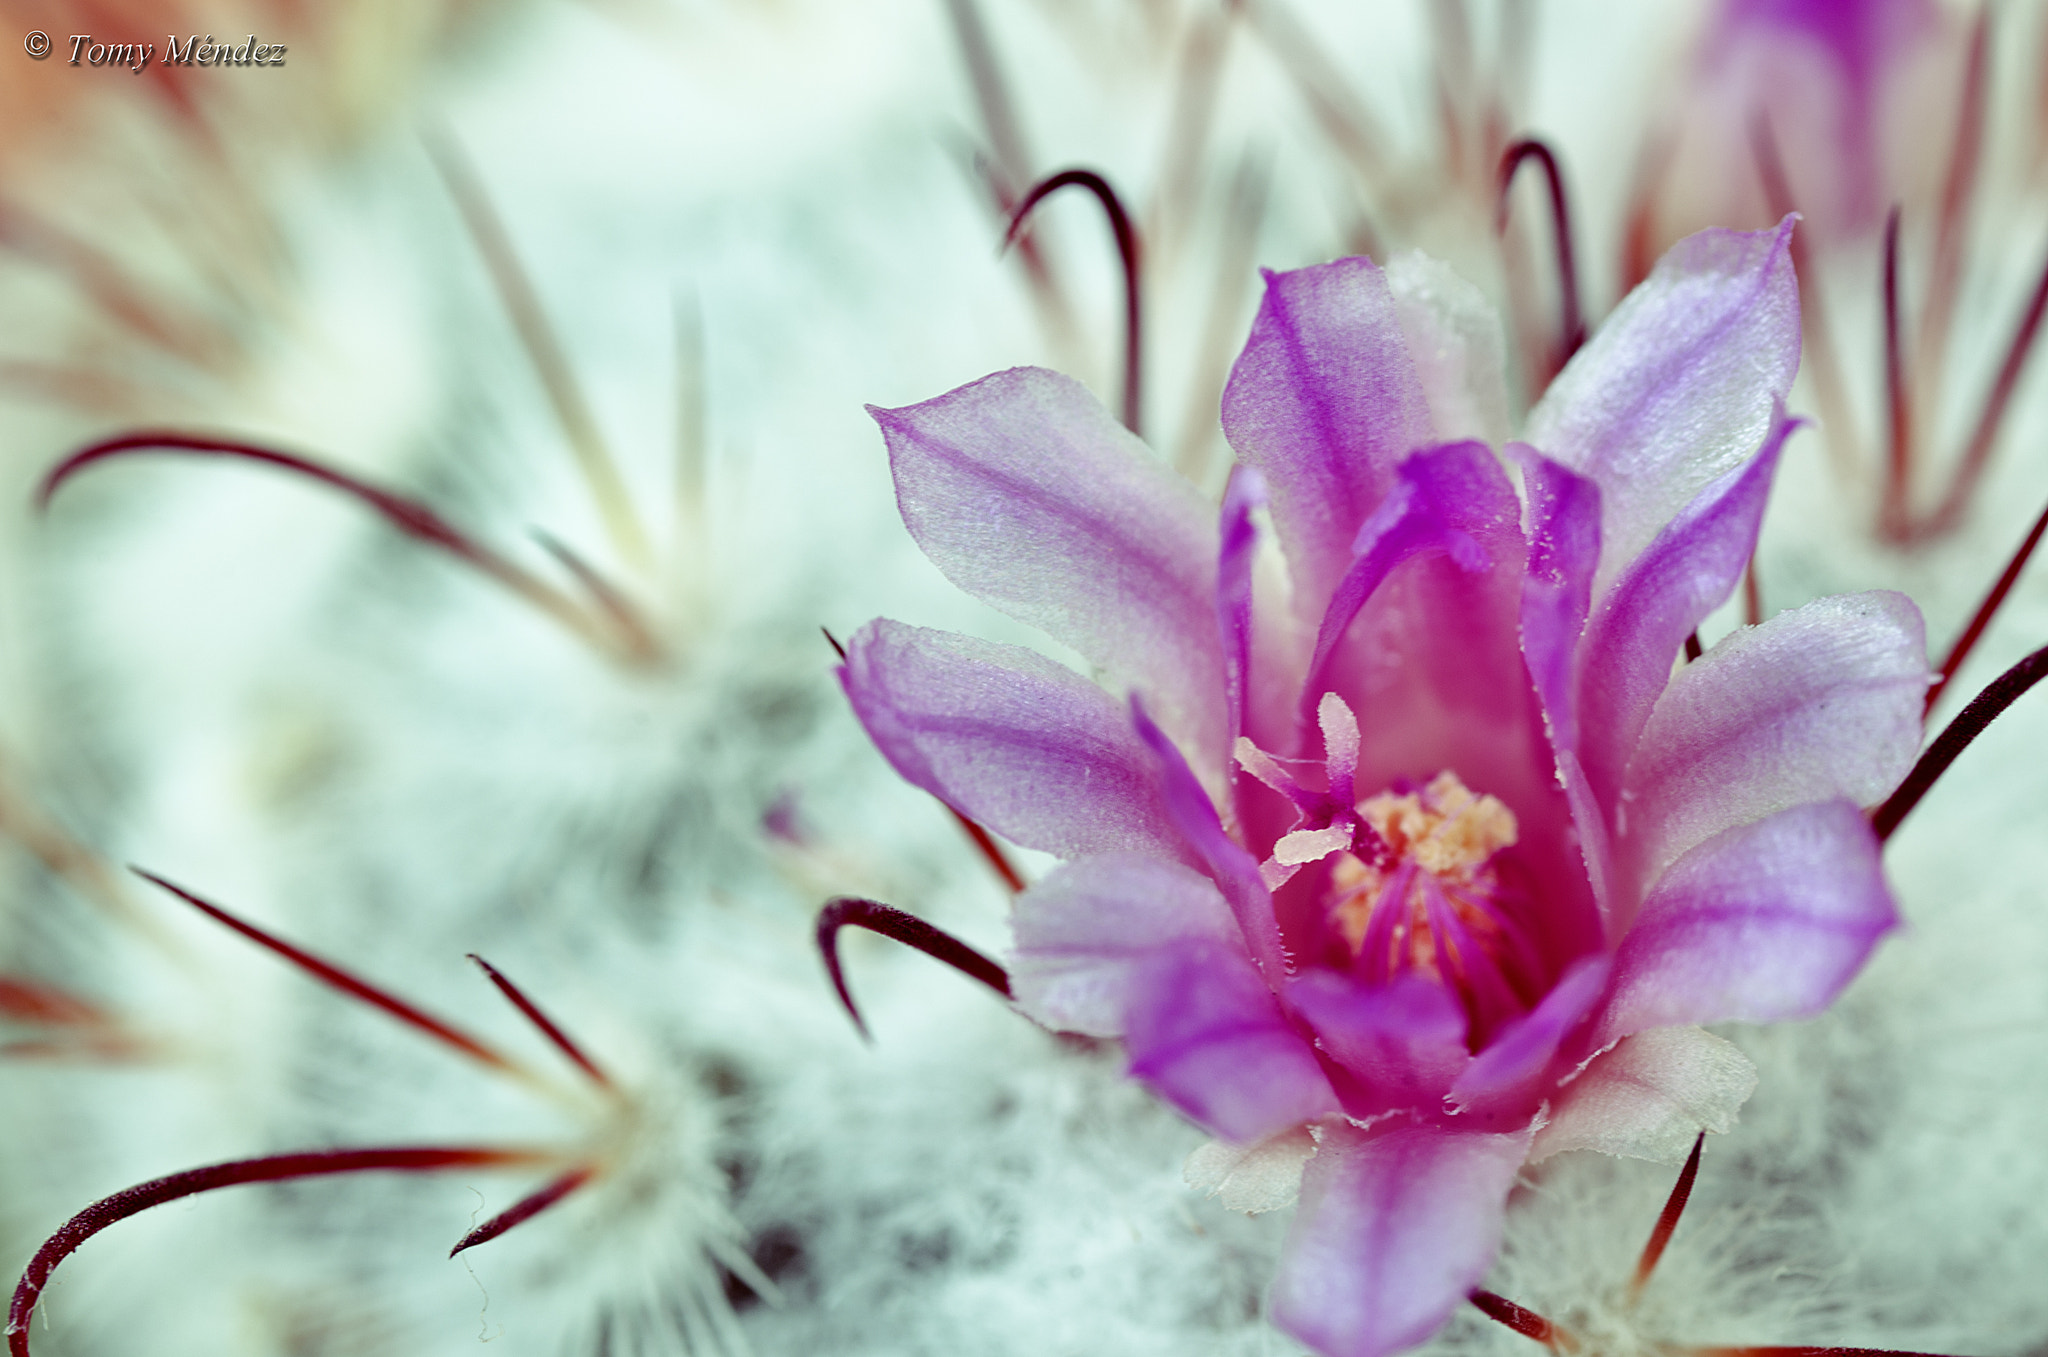 Photograph Flor Cactus 004 by Tomy Méndez on 500px